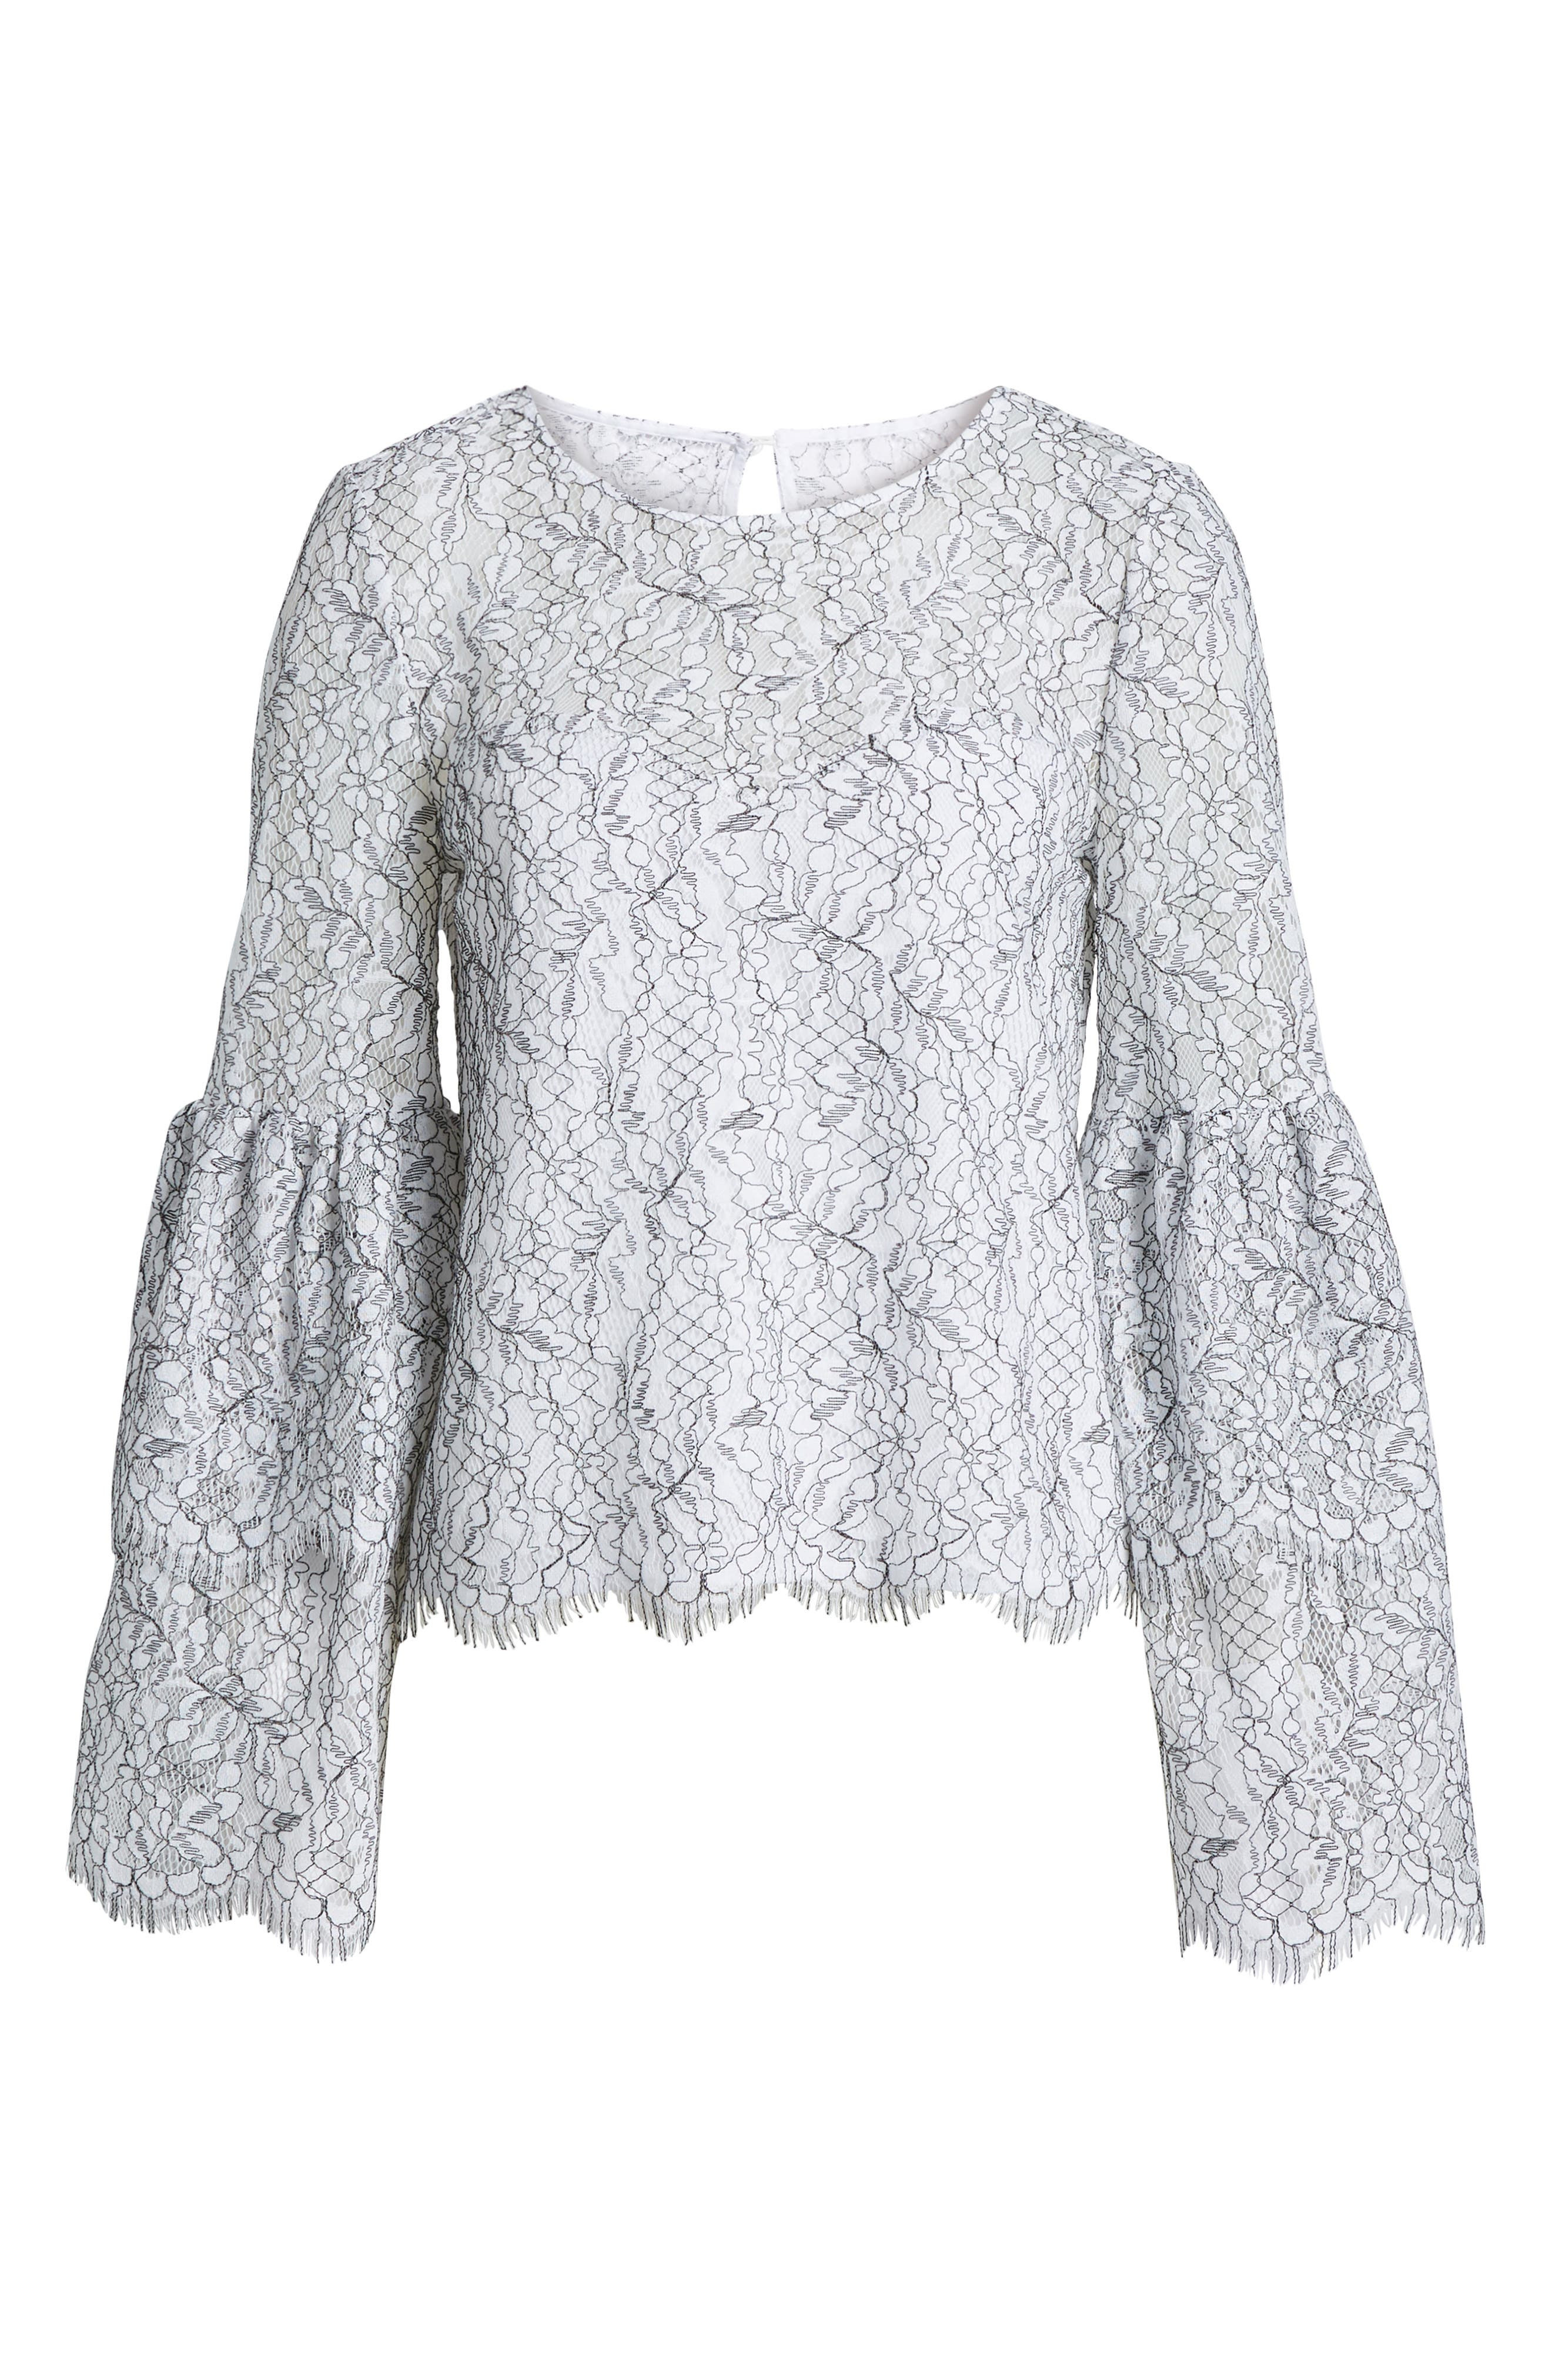 Basswood Lace Top,                             Alternate thumbnail 6, color,                             Ivory